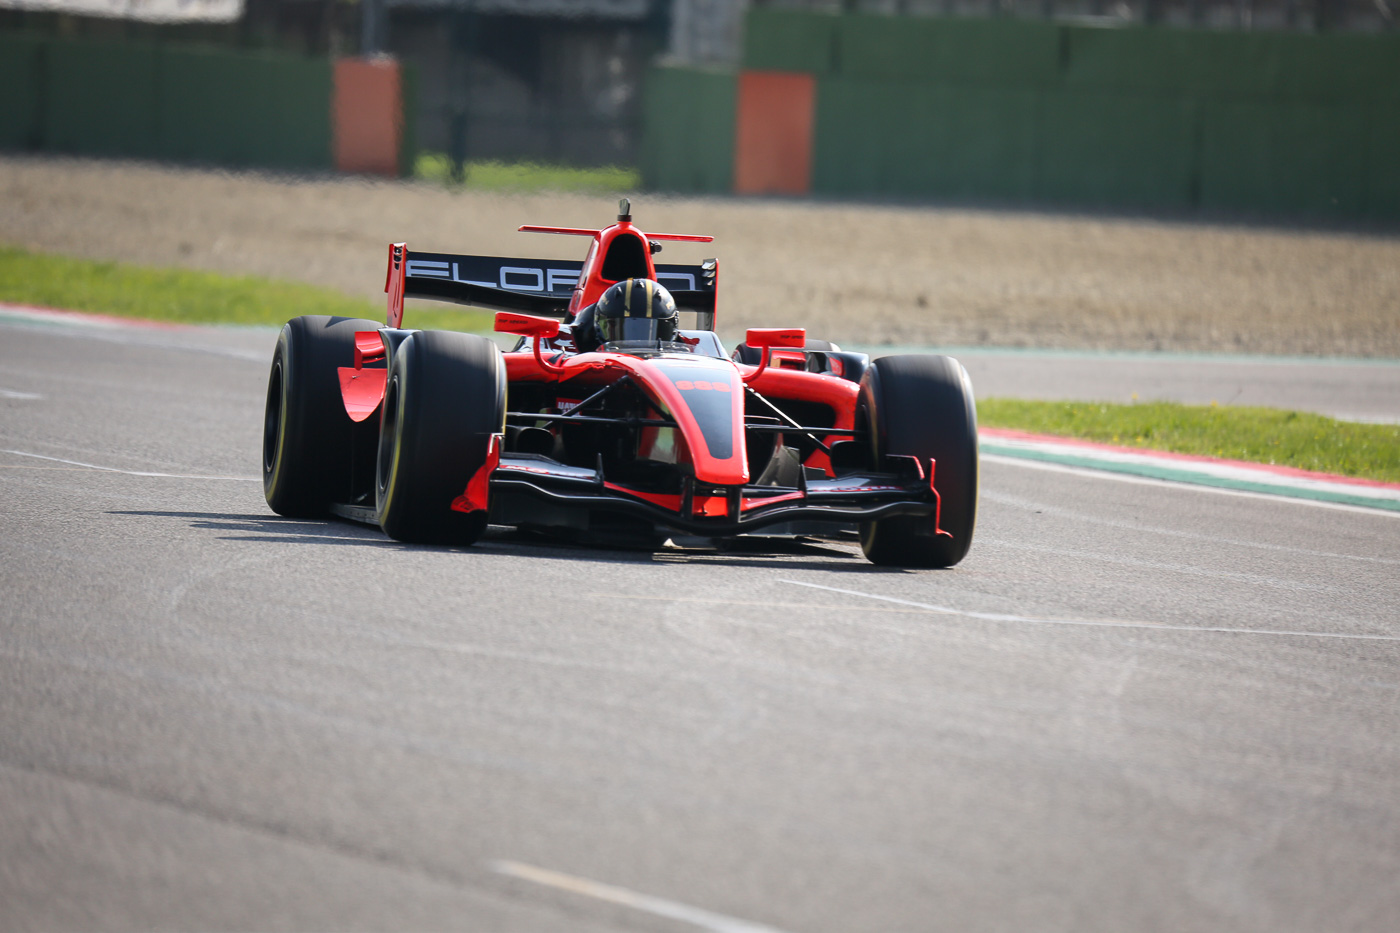 Florian Schnitzenbaumer during Qualifying in Imola 2017.